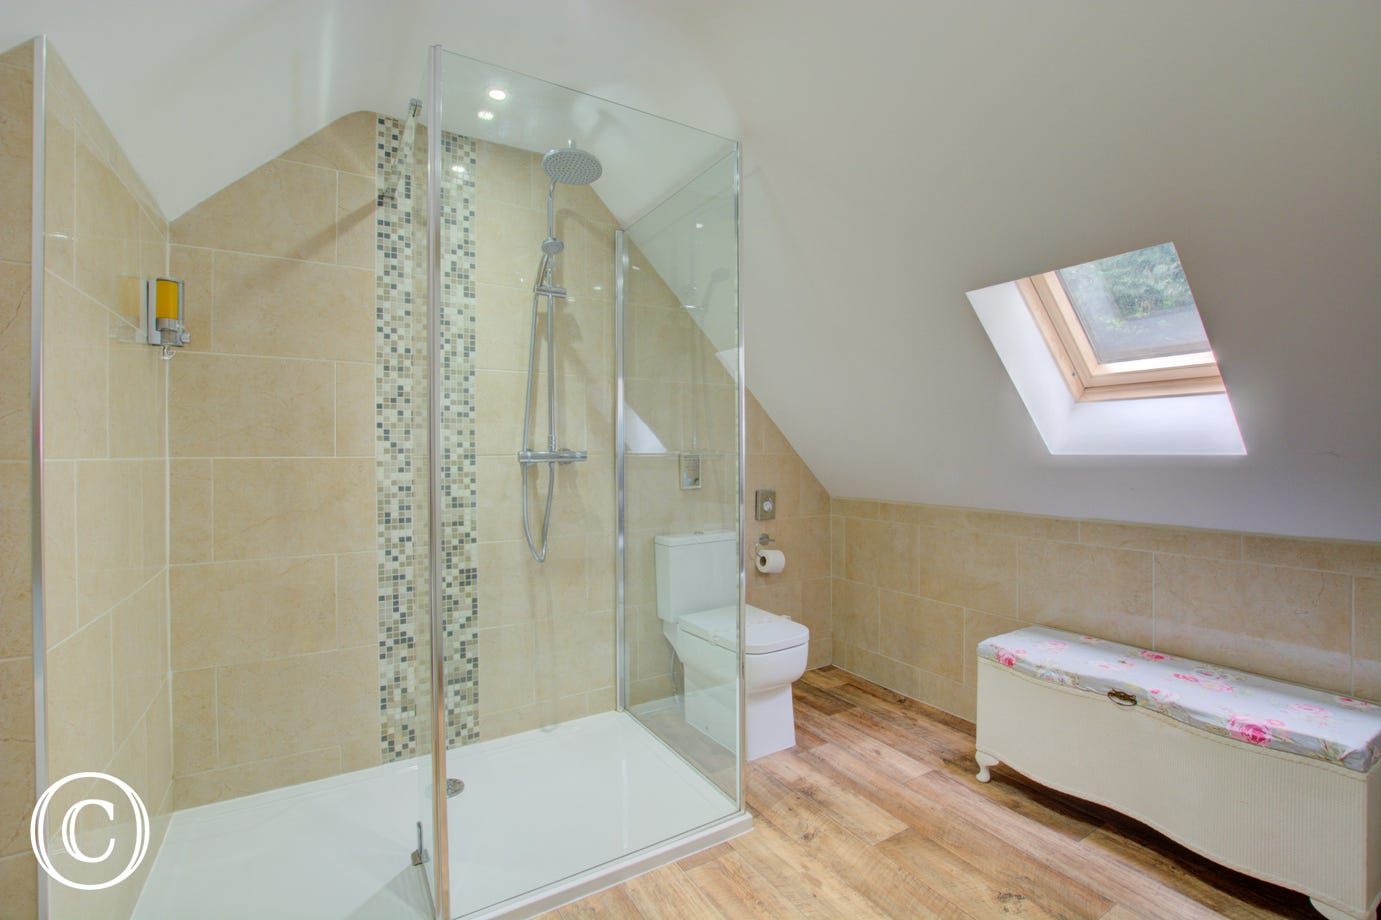 Bathroom has corner bath with waterfall taps and shower cubicle with drench head.